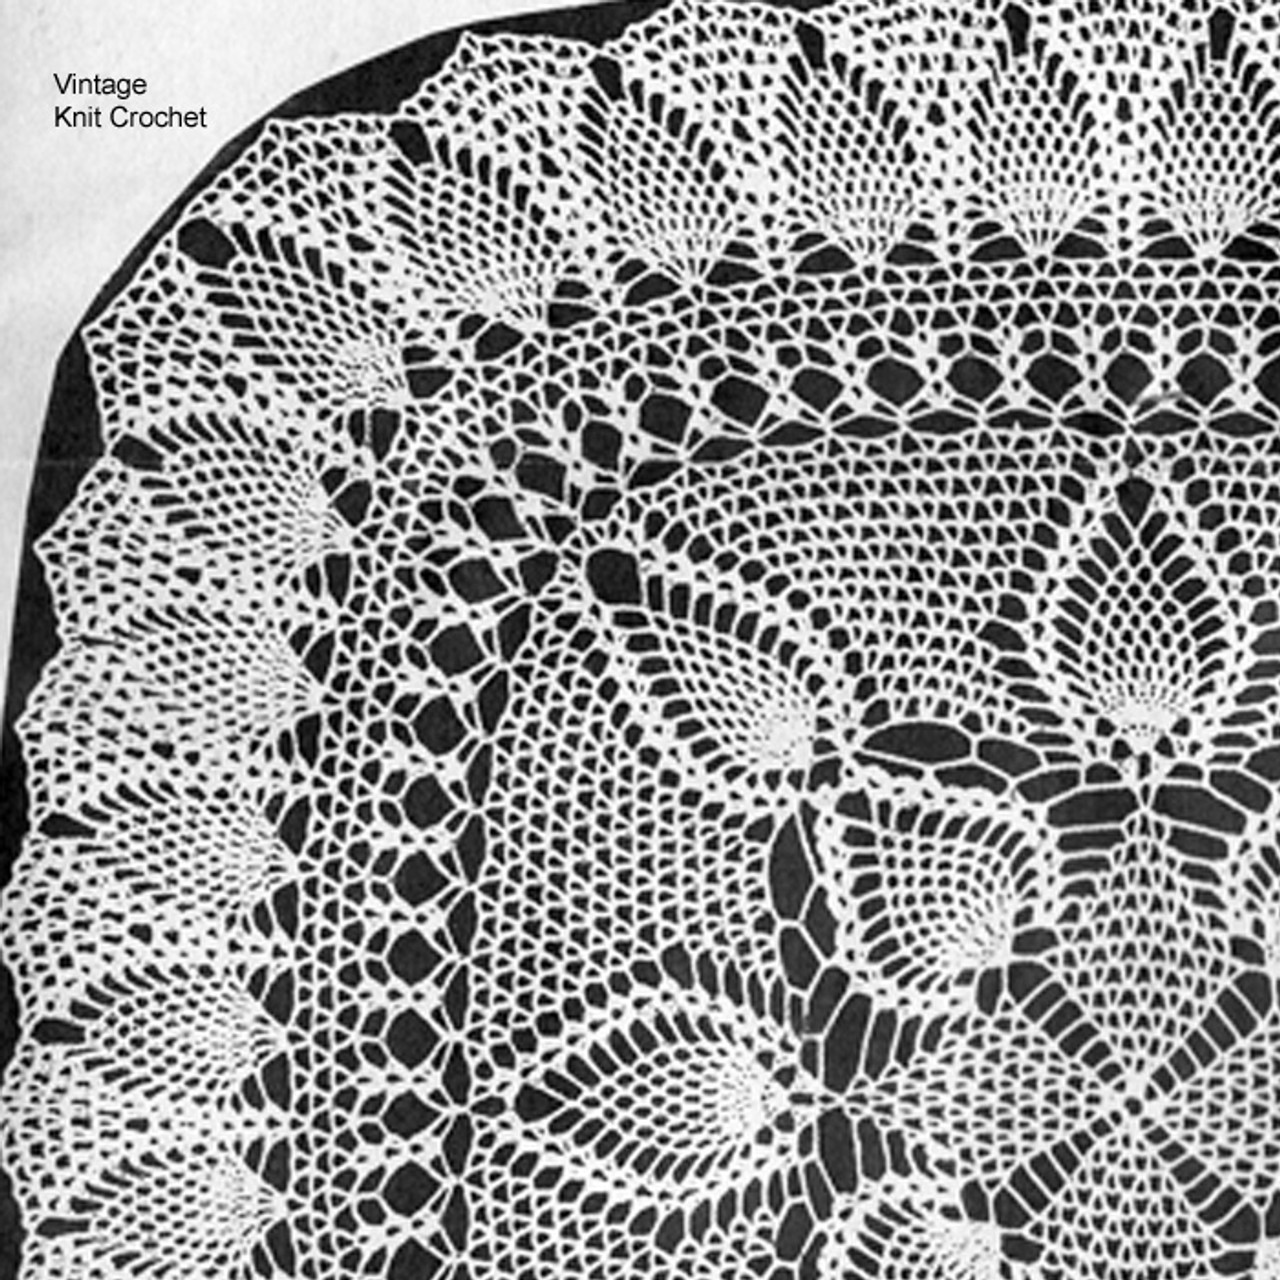 Mail Order 866, pineapple doily pattern is square with narrow ruffled border in four sizes.  Martha Madison Design.